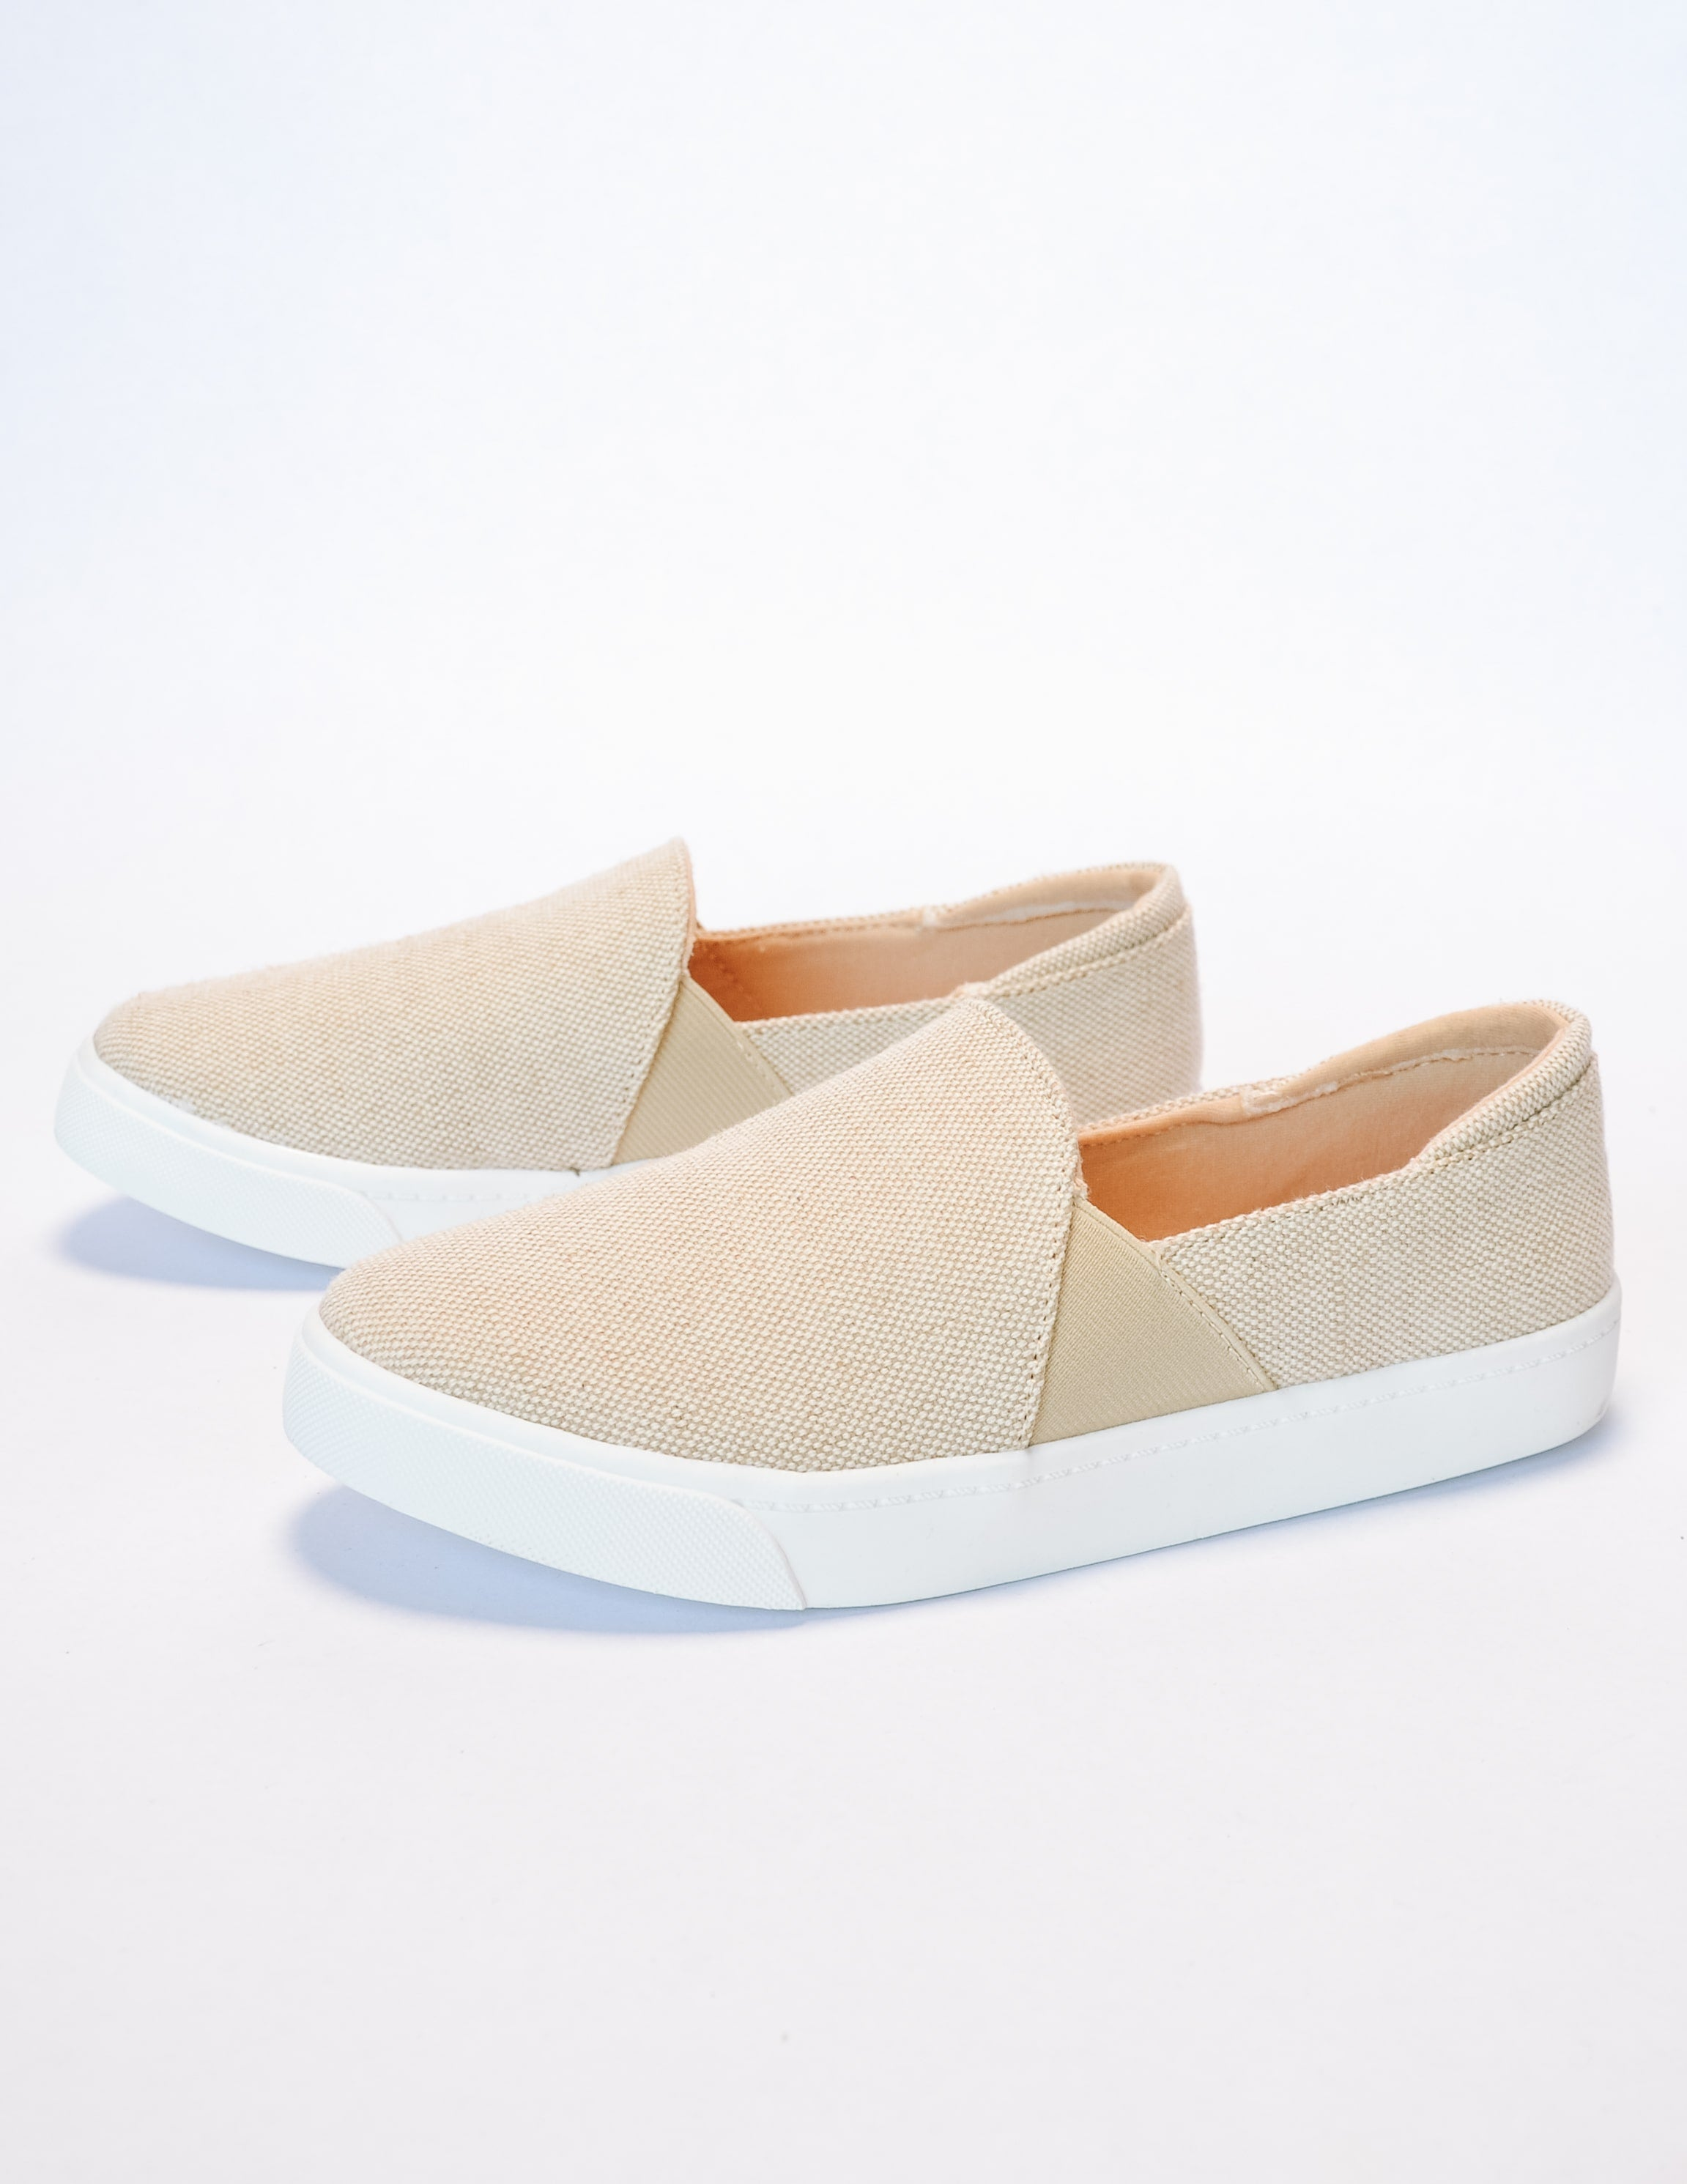 Beige weekend wanderer sneaker with white rubber sole and elastic gores